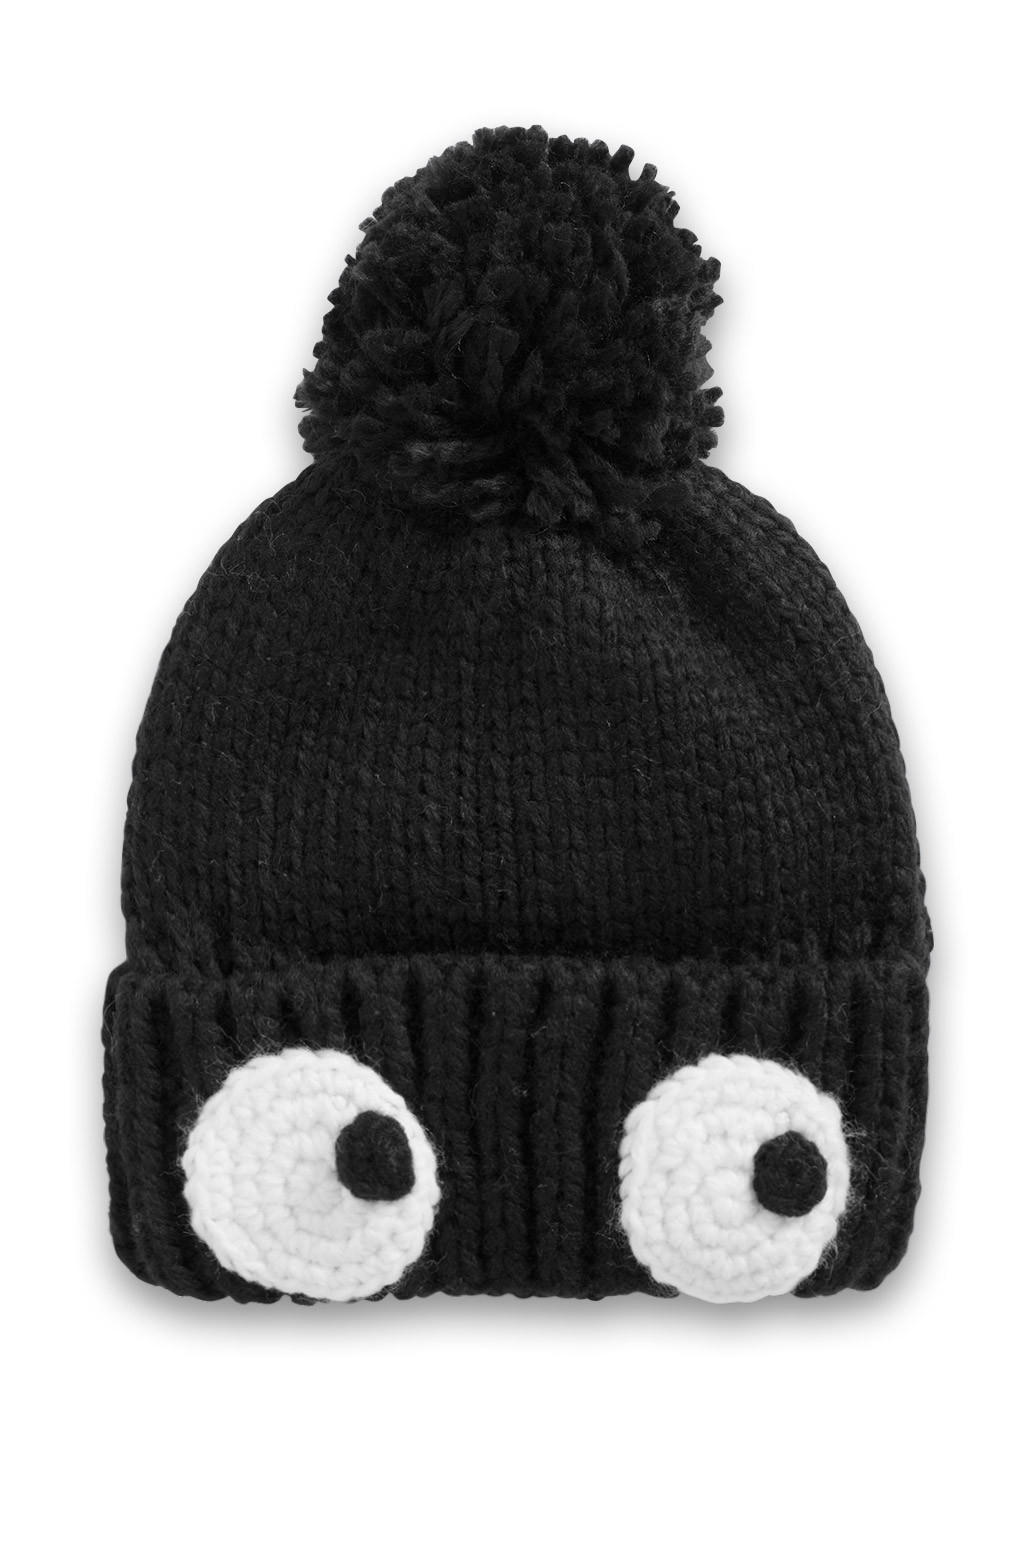 Luxury Esprit soft Chunky Knit Hat with Crocheted Eyes at Our Chunky Knit Hat Of Delightful 46 Pictures Chunky Knit Hat